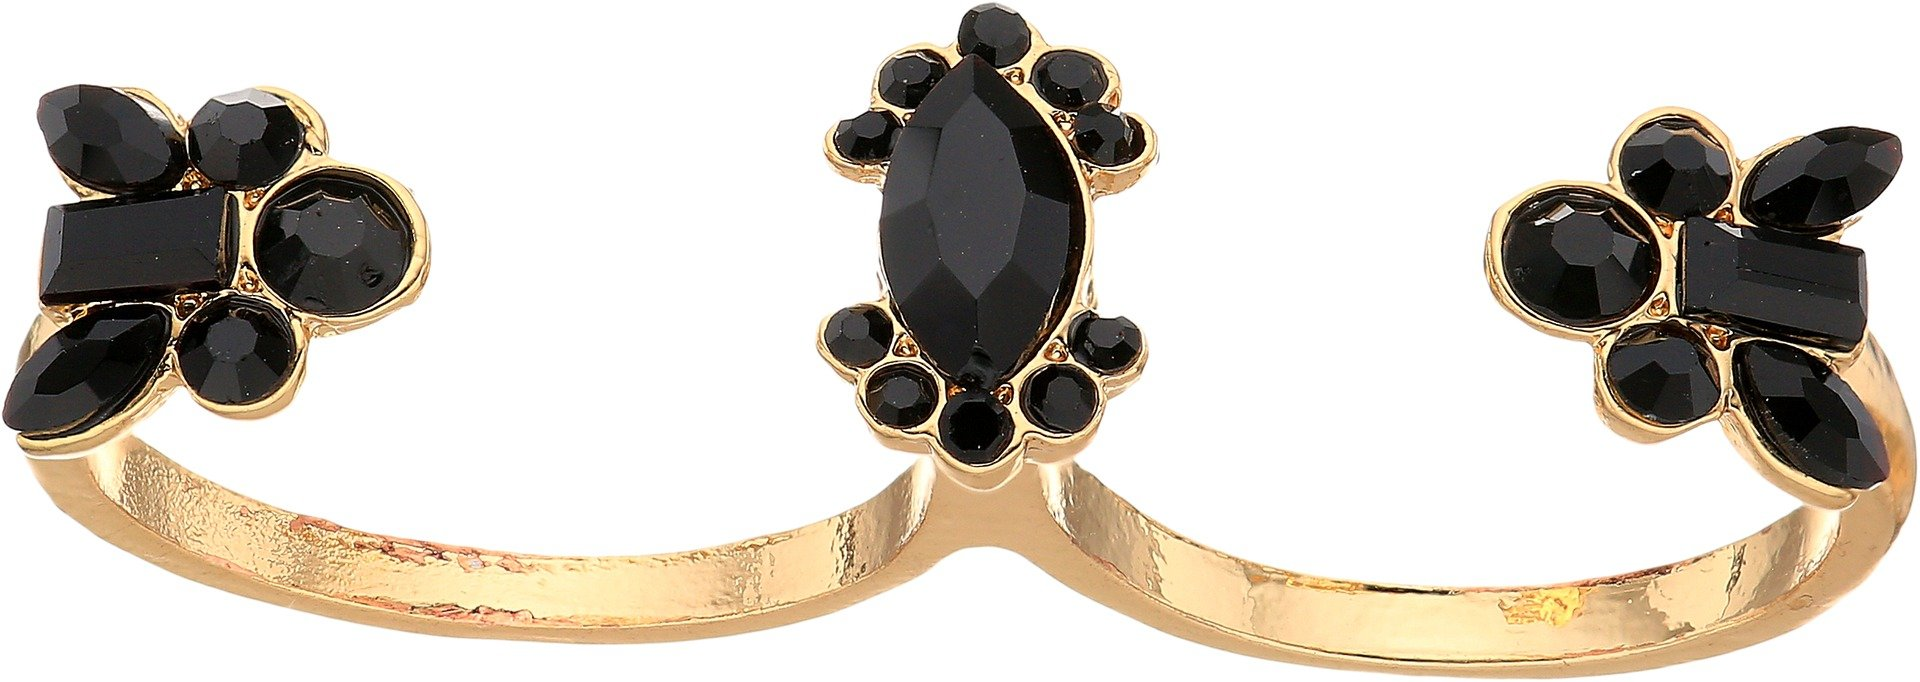 GUESS Ring Update Women's Jet Stone Two Finger Ring, Gold, 7